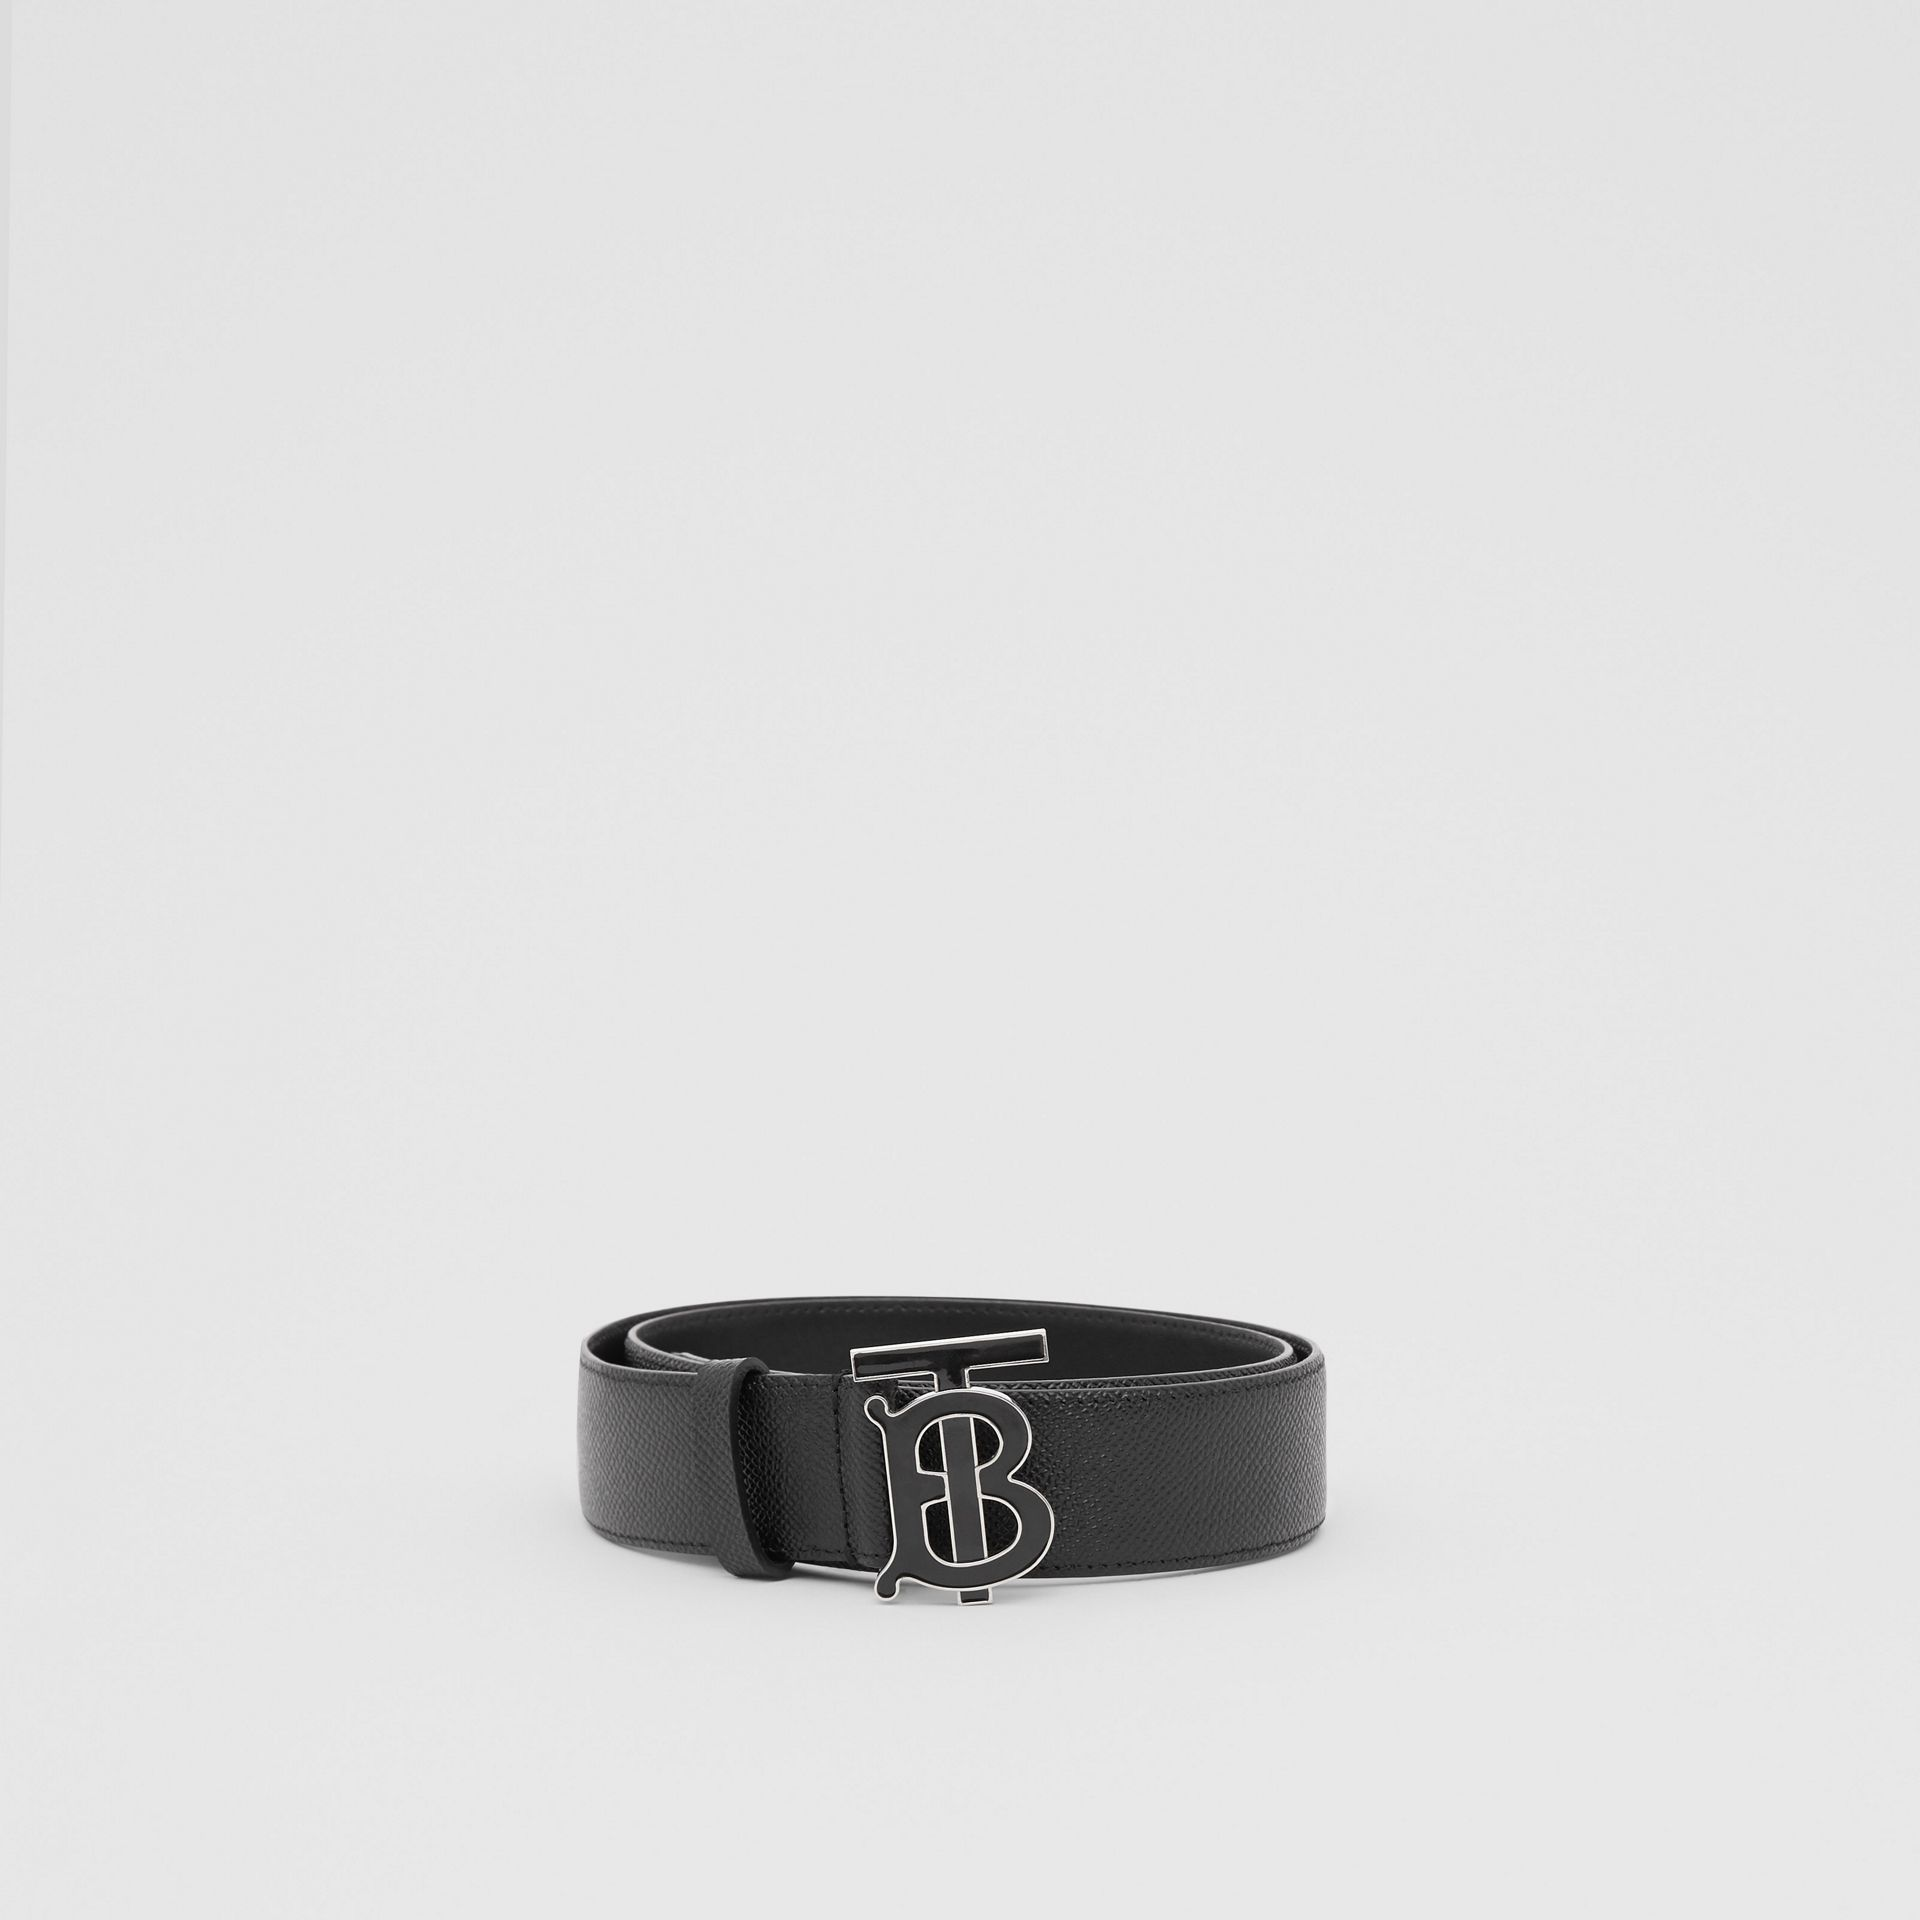 Monogram Motif Grainy Leather Belt in Black - Men | Burberry Singapore - gallery image 3